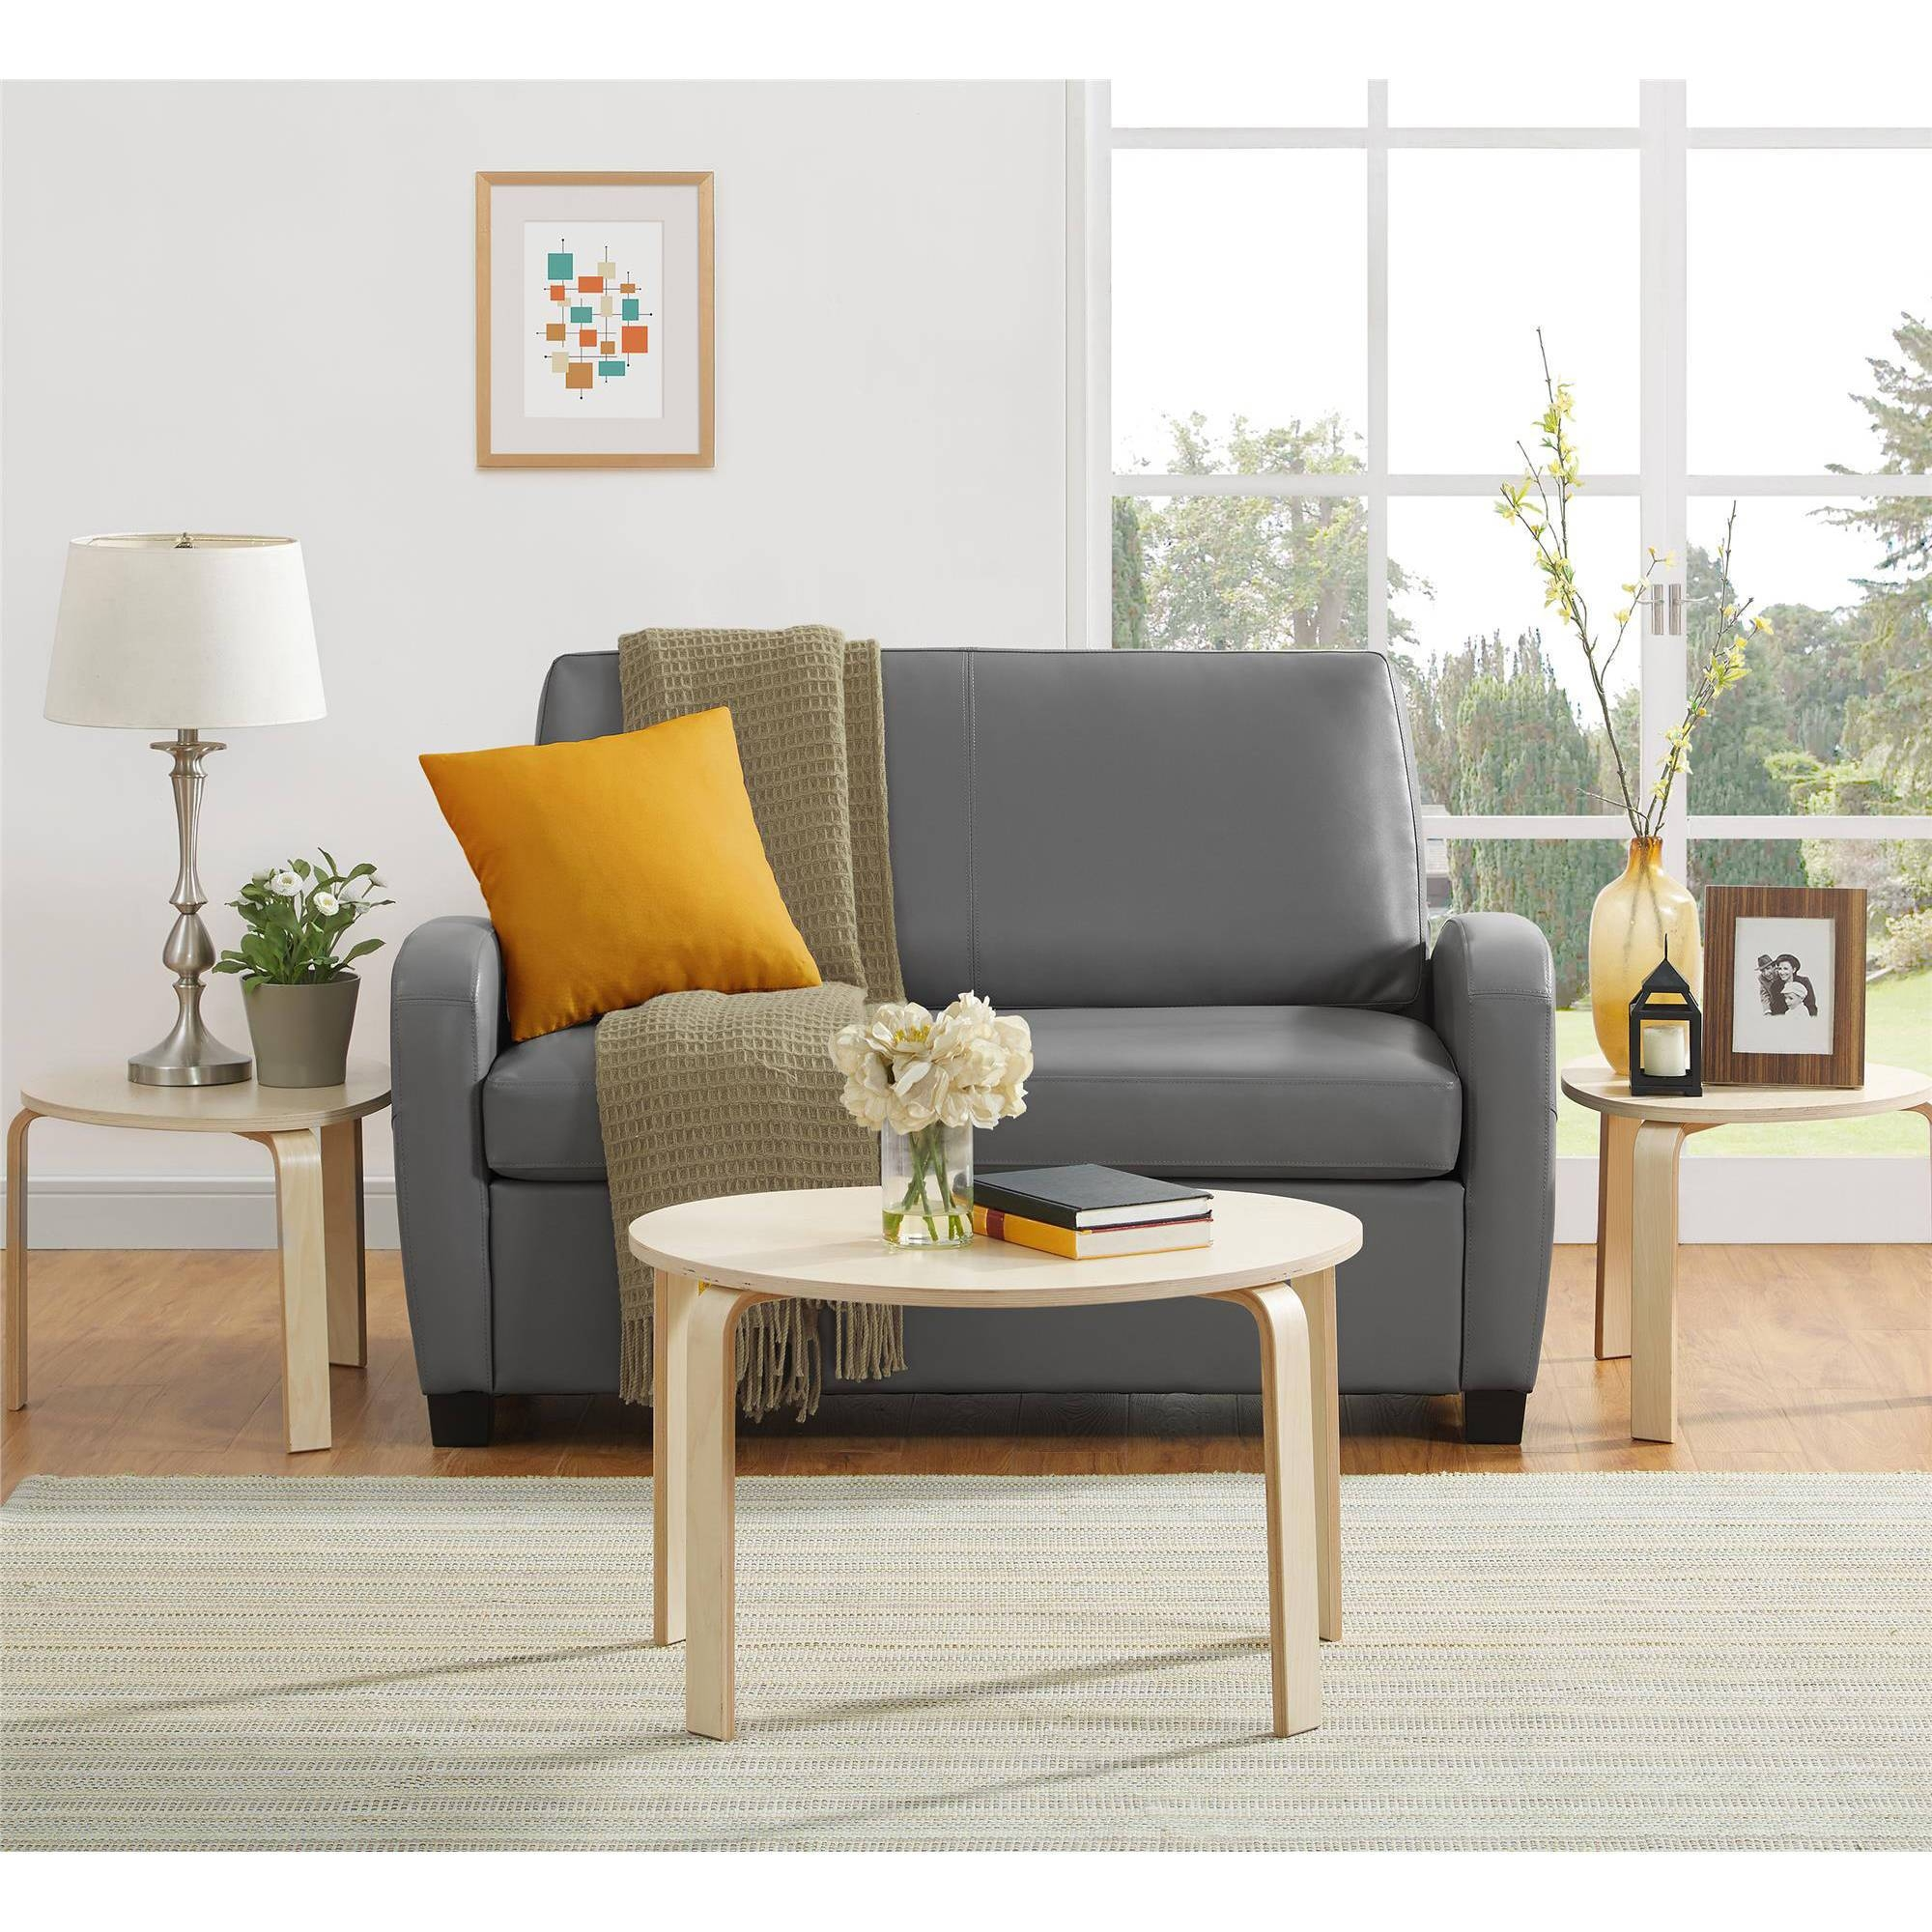 Mainstays Sofa Sleeper, Black - Walmart pertaining to Mainstays Sleeper Sofas (Image 10 of 15)